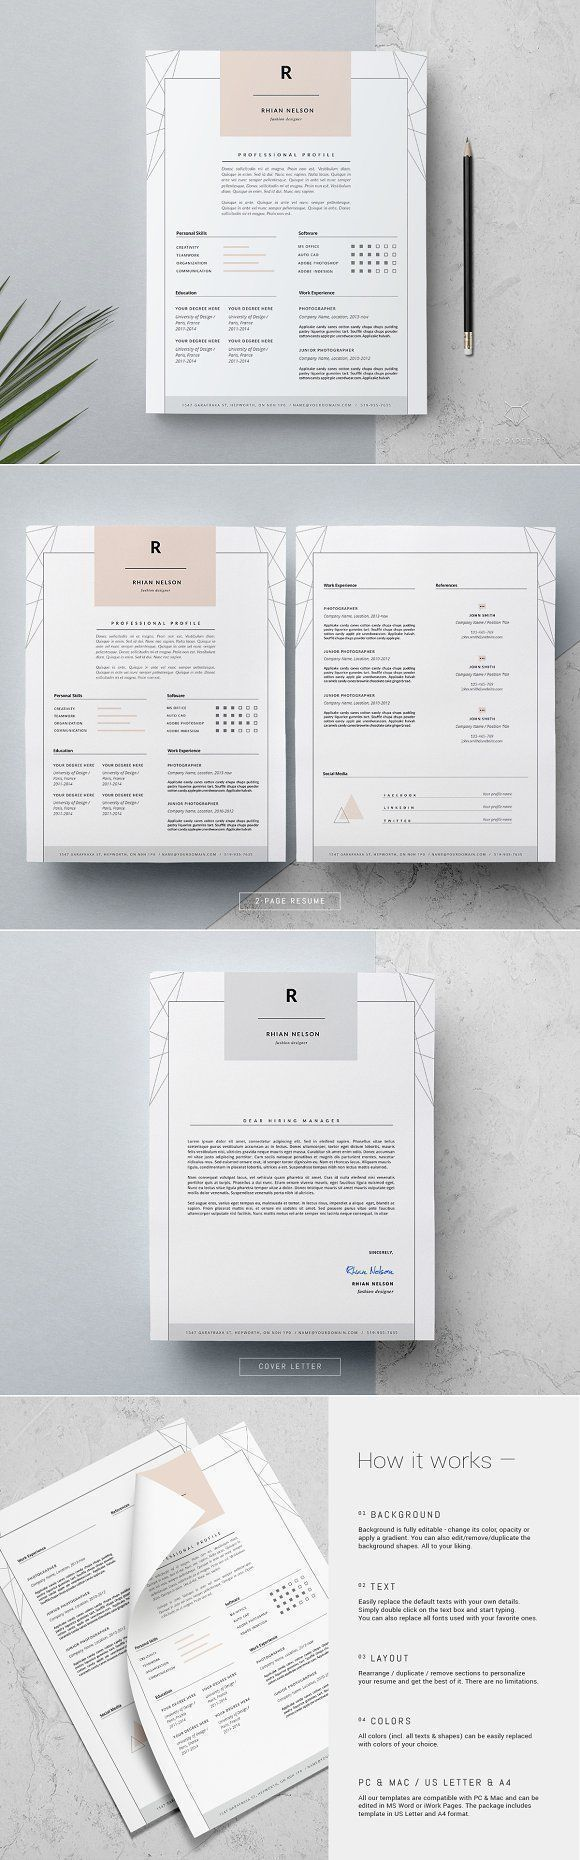 3 page Resume Template / Rhian by This Paper Fox on @creativemarket Professional printable resume / cv cover letter template examples creative design and great covers, perfect in modern and stylish corporate business design. Modern, simple, clean, minimal and feminine style. Ready to print us letter and a4 layout inspiration to grab some ideas. In psd, indd, docs, ms word file format.